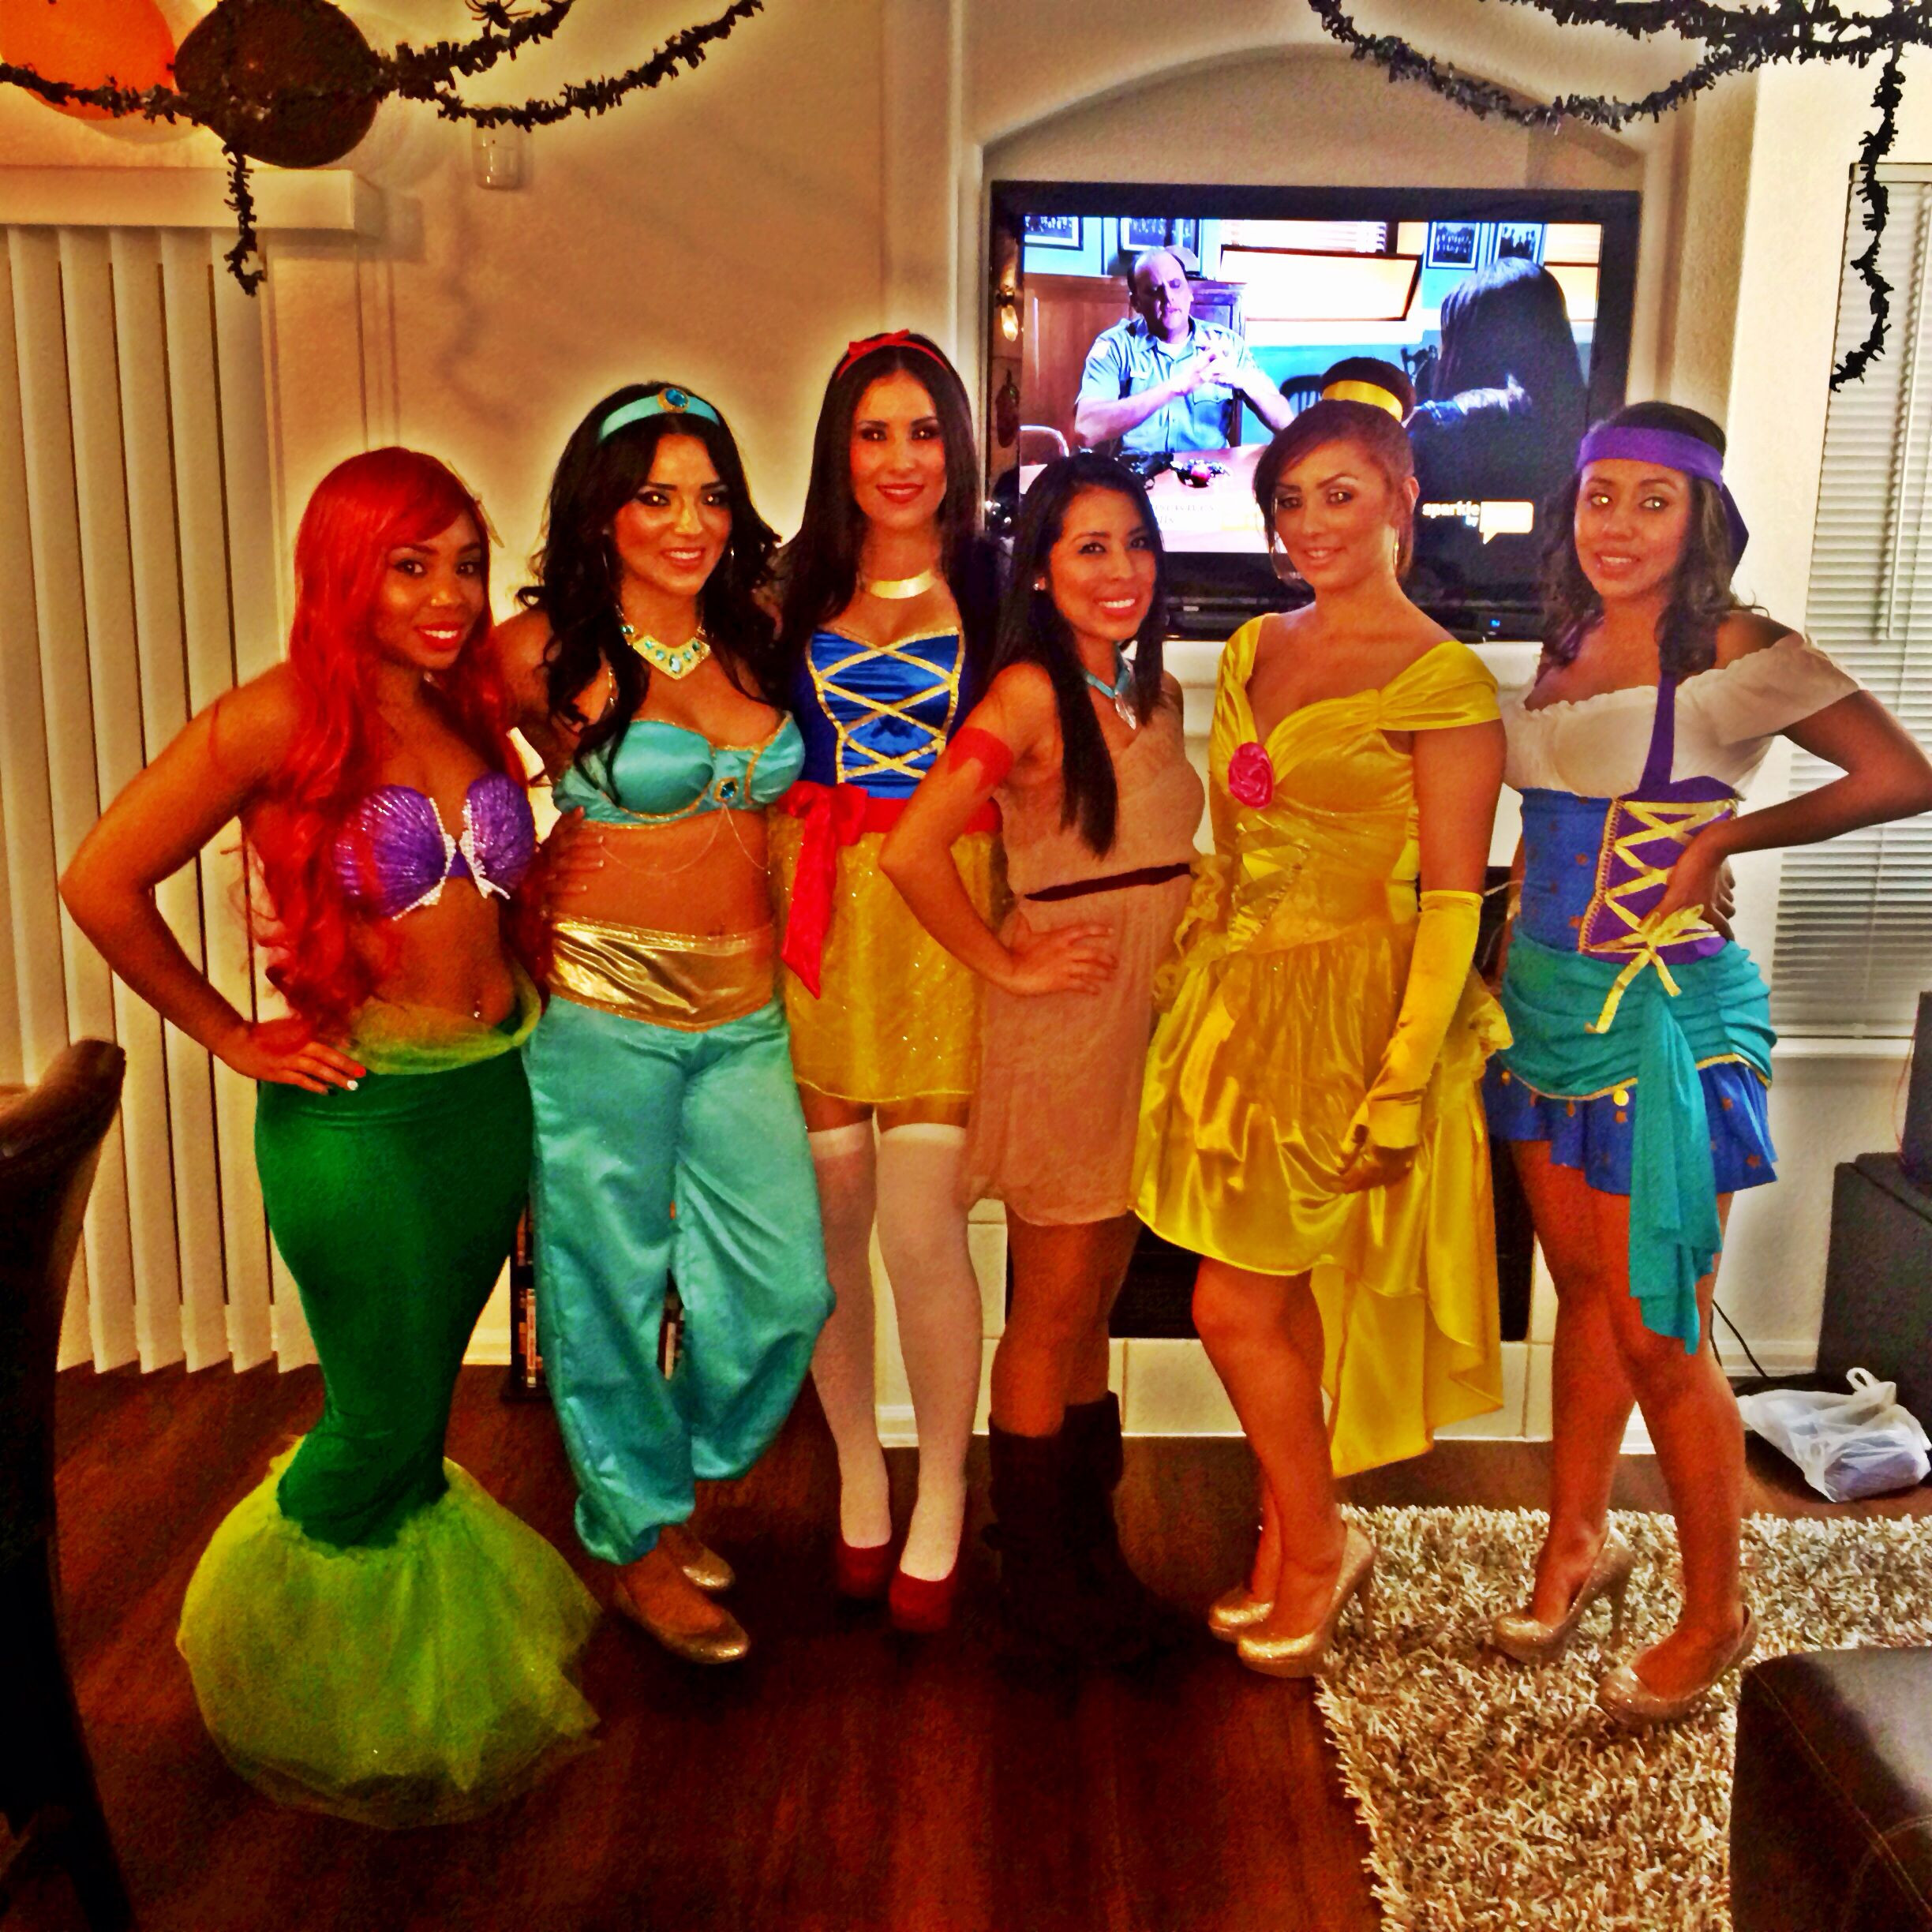 Best ideas about Halloween Costumes DIY . Save or Pin Disney Princess DIY Halloween Costumes Now.